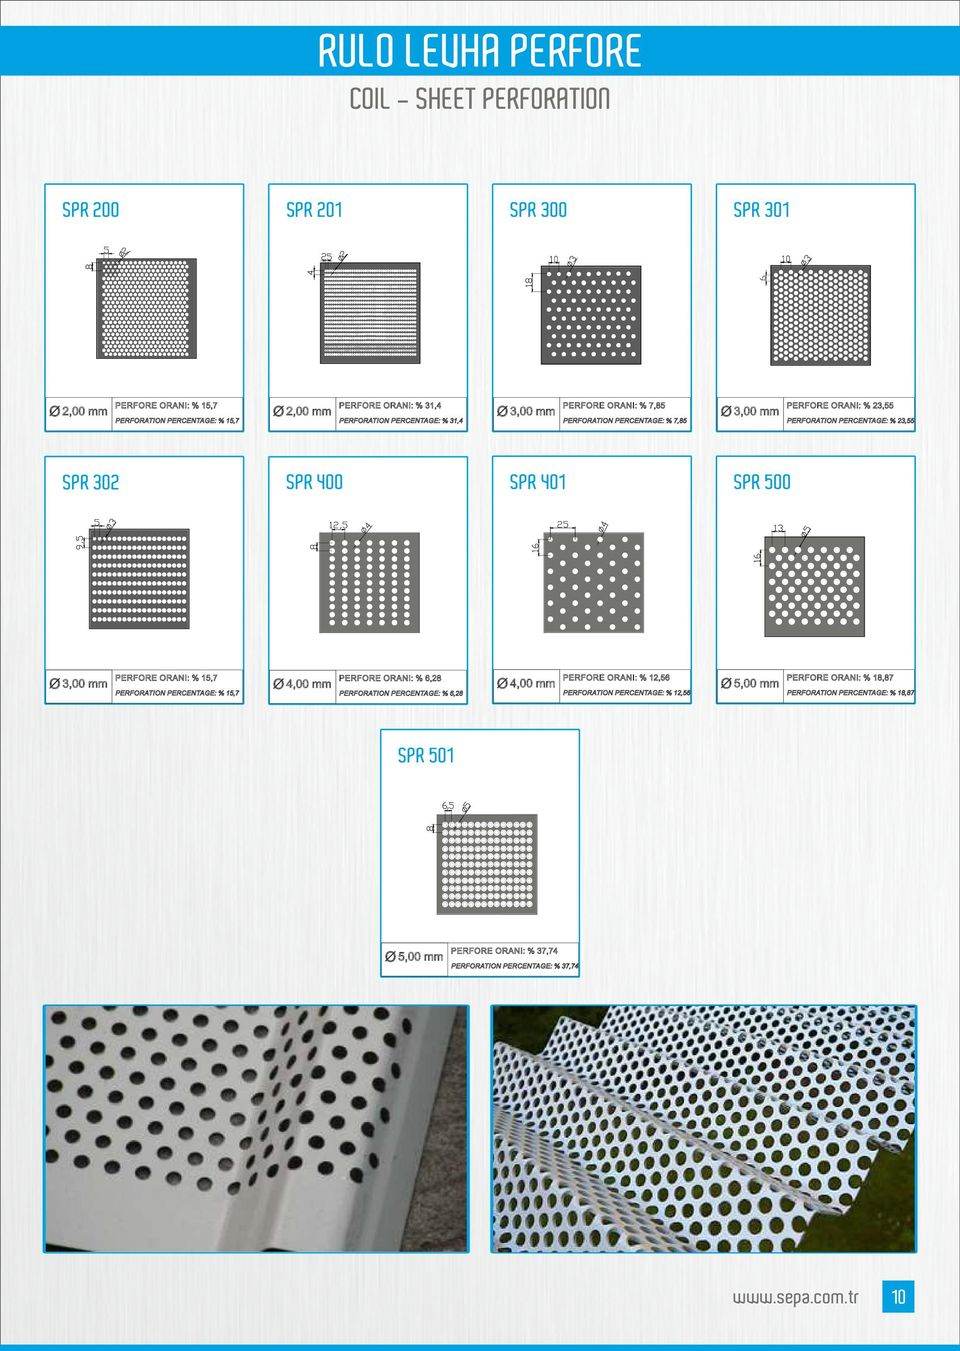 SPR 401 SPR 500 O 3,00 mm PERFORE ORANI % 15,7 PERFORATION PERCENTAGE % 15,7 O 4,00 mm PERFORE ORANI % 6,28 PERFORATION PERCENTAGE % 6,28 O 4,00 mm PERFORE ORANI % 12,56